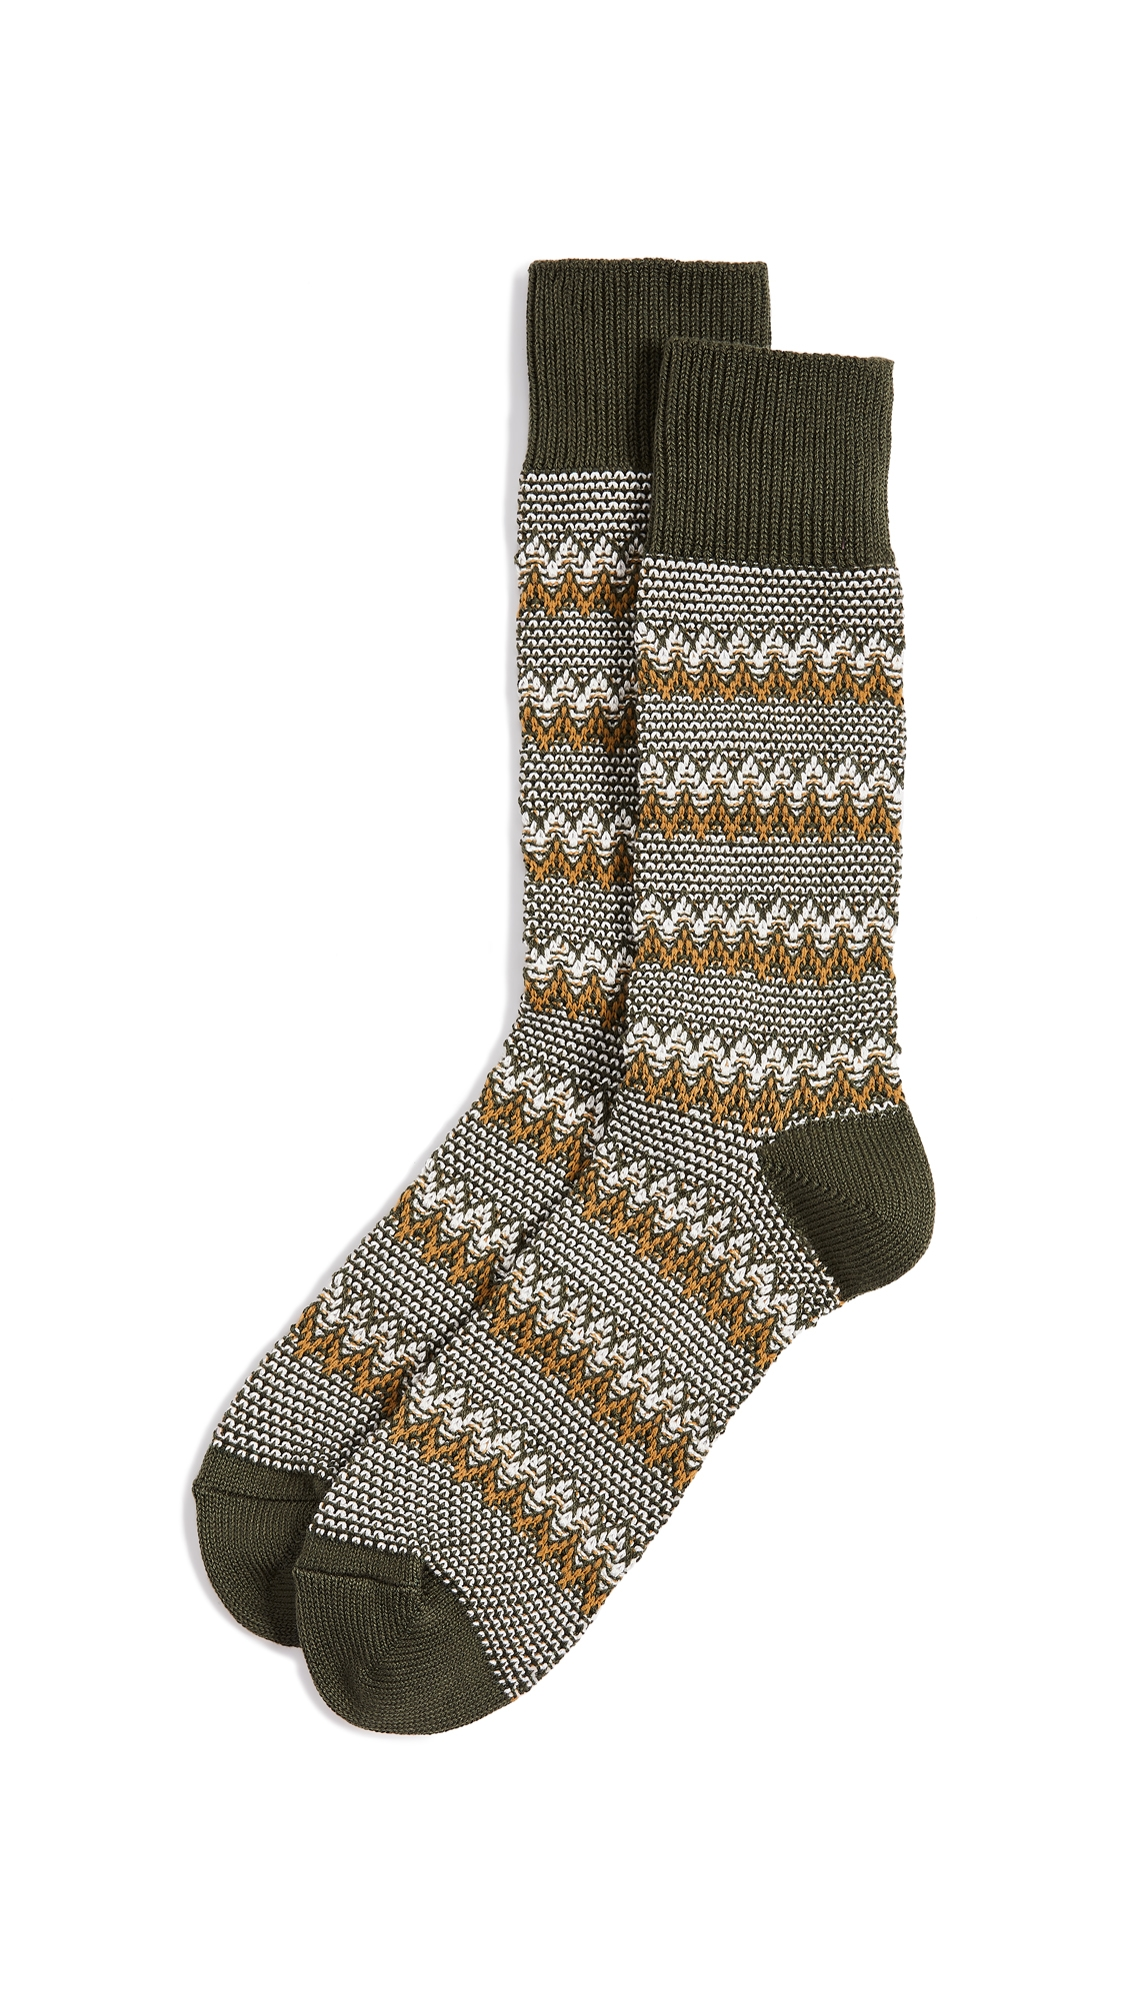 ANONYMOUS ISM ZIGZAG LINKS CREW SOCKS